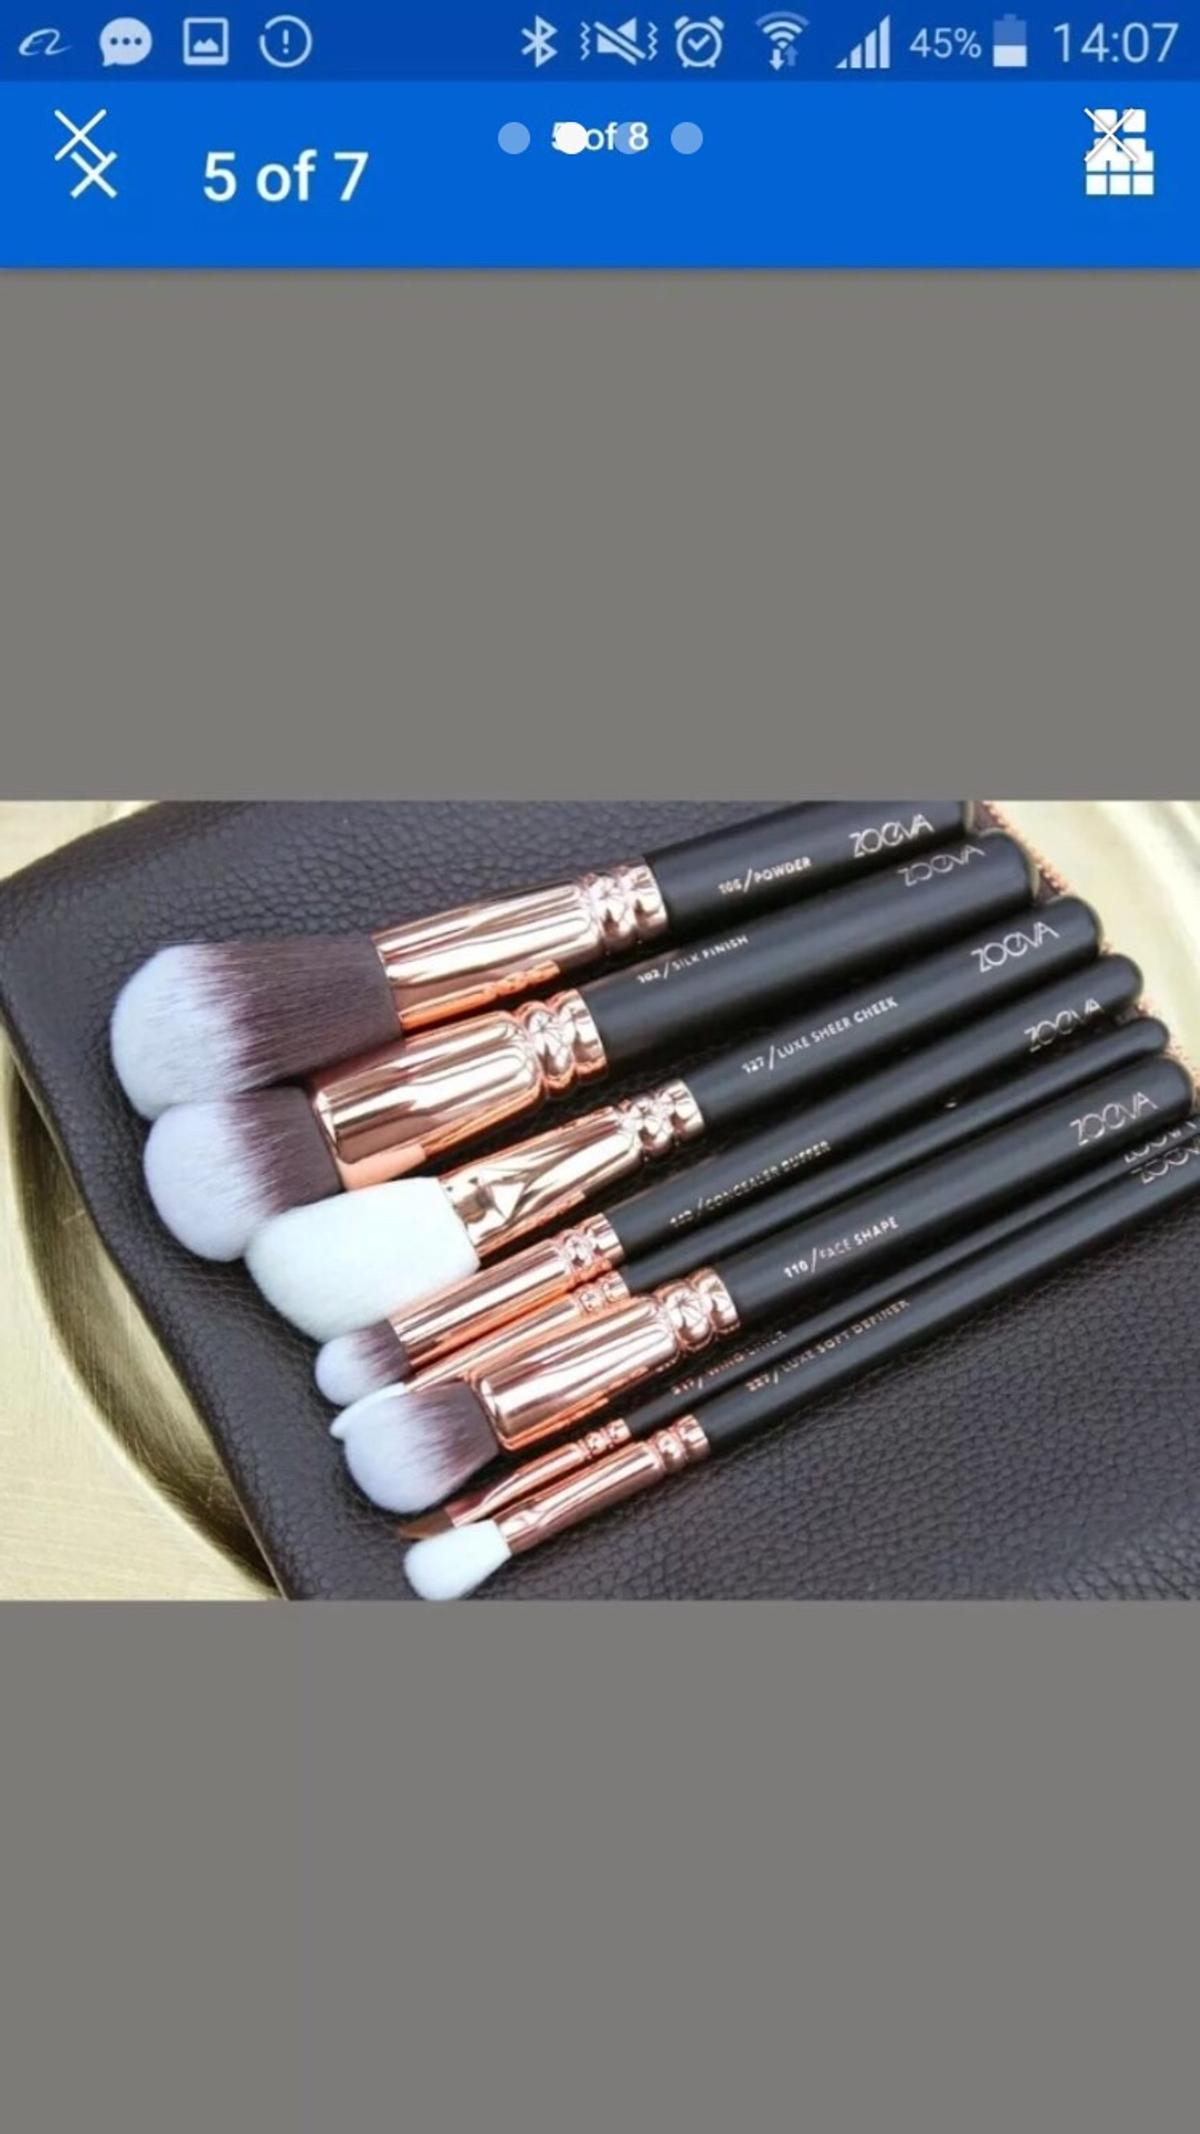 Brand new Never used 15 pcs brushes set with pouch